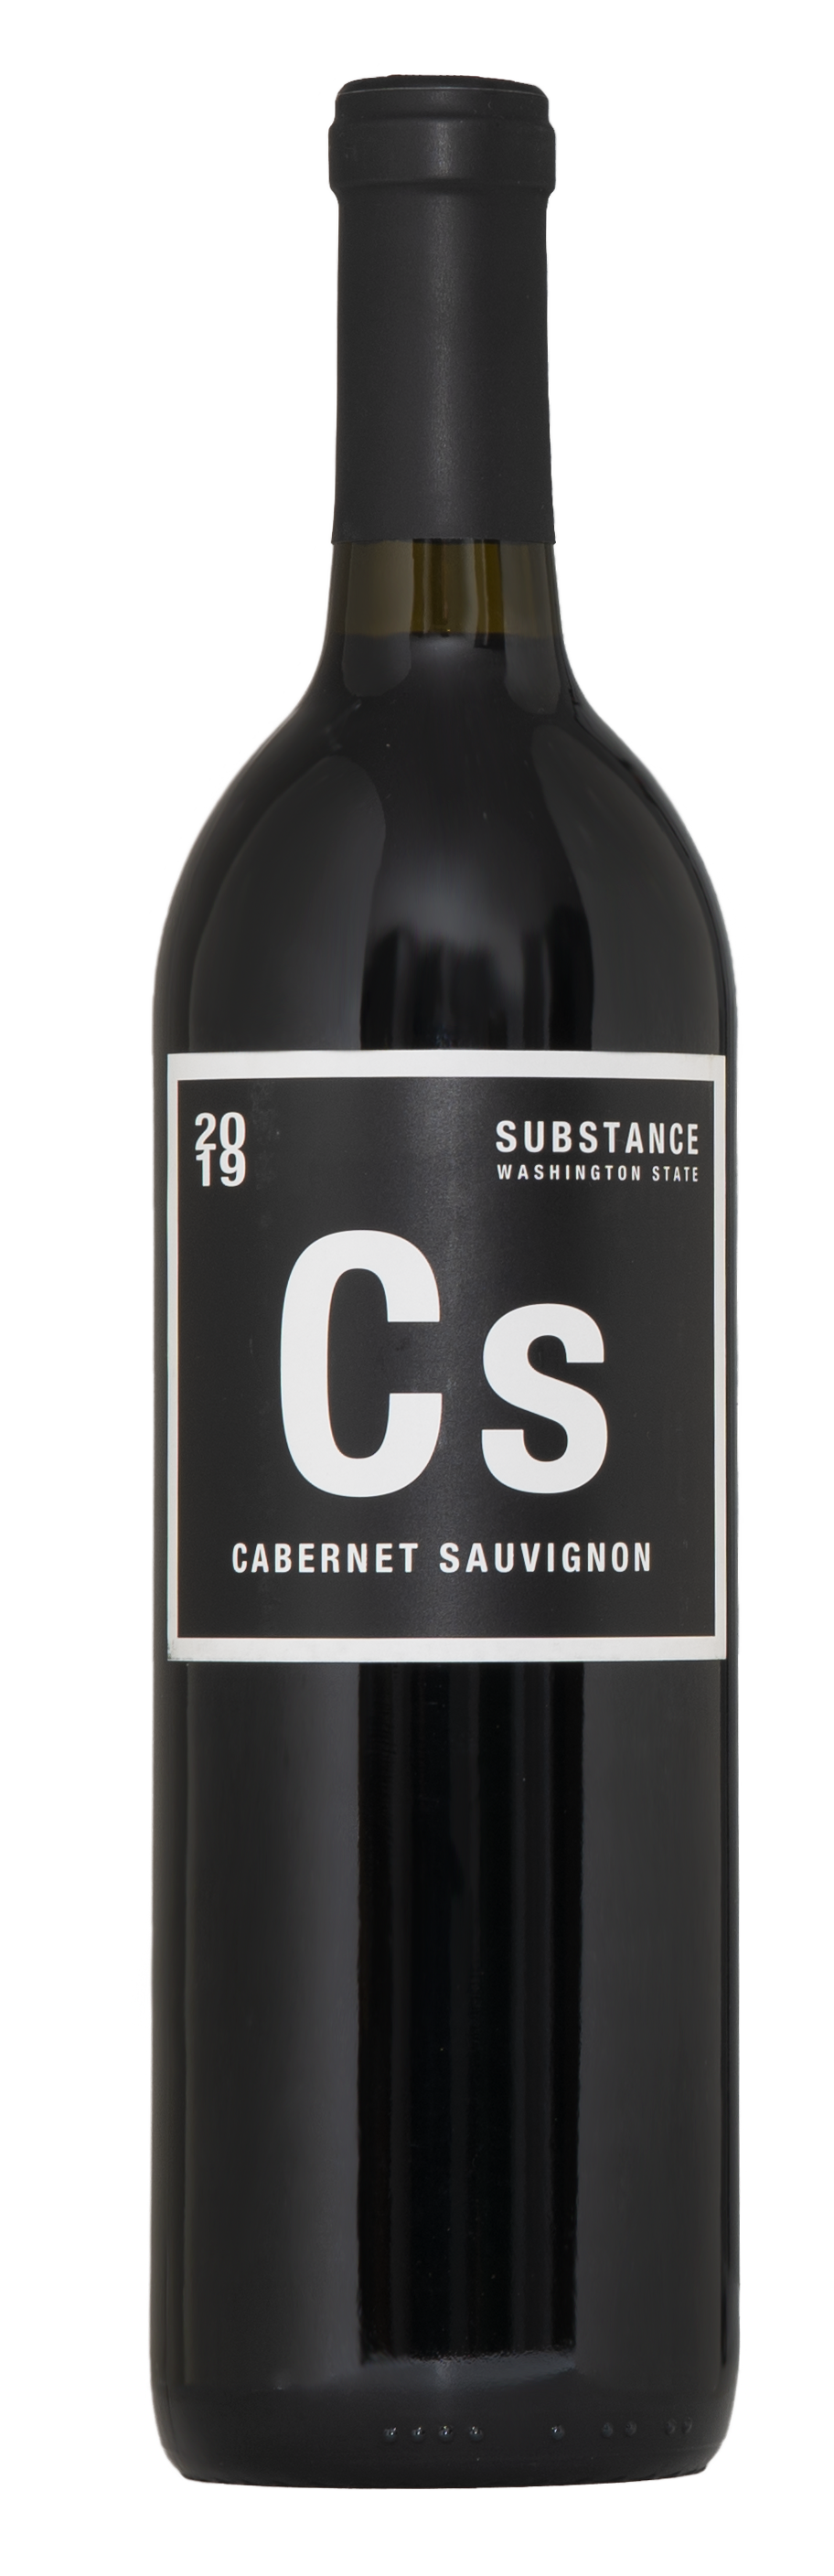 The lovely-classy Substance Cab Sauv bottle. It's black with dark red wine inside. A black capsule on top and black/white label.